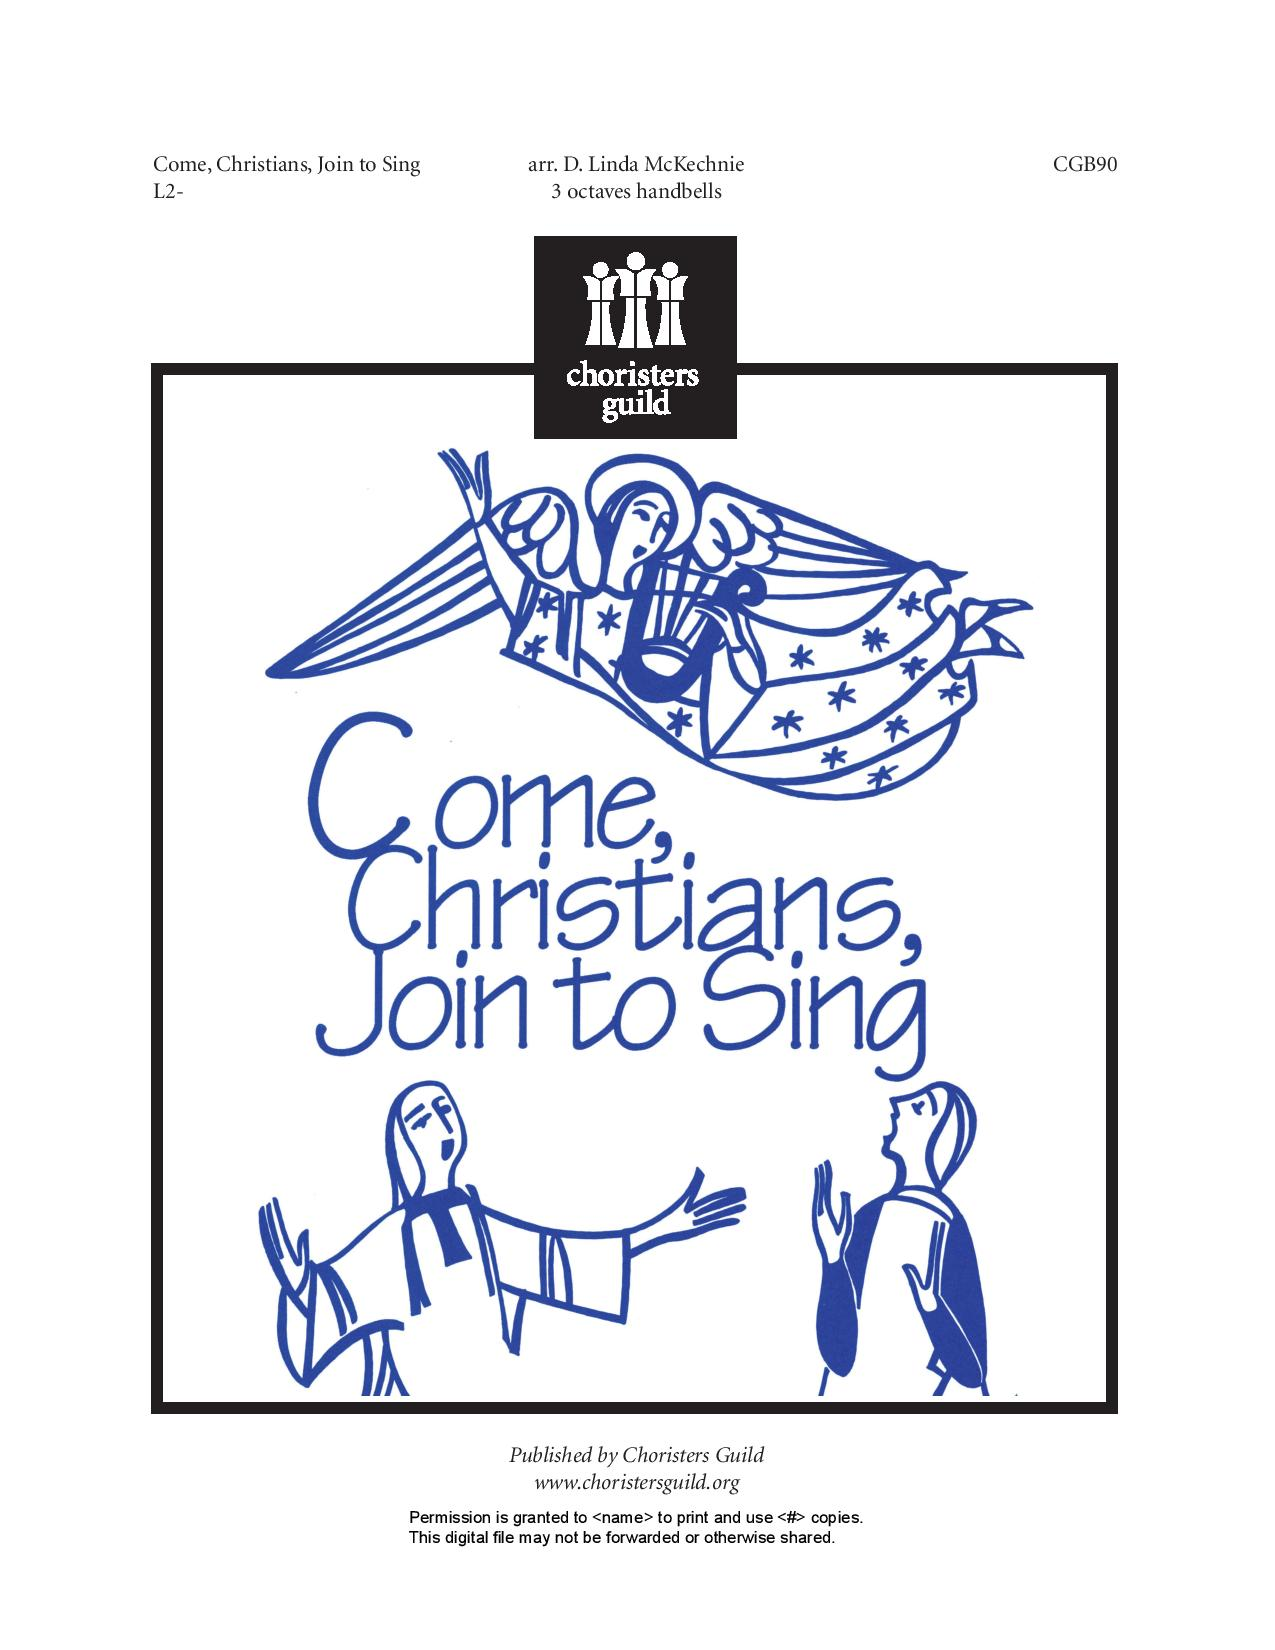 Come, Christians, Join to Sing (Handbells)